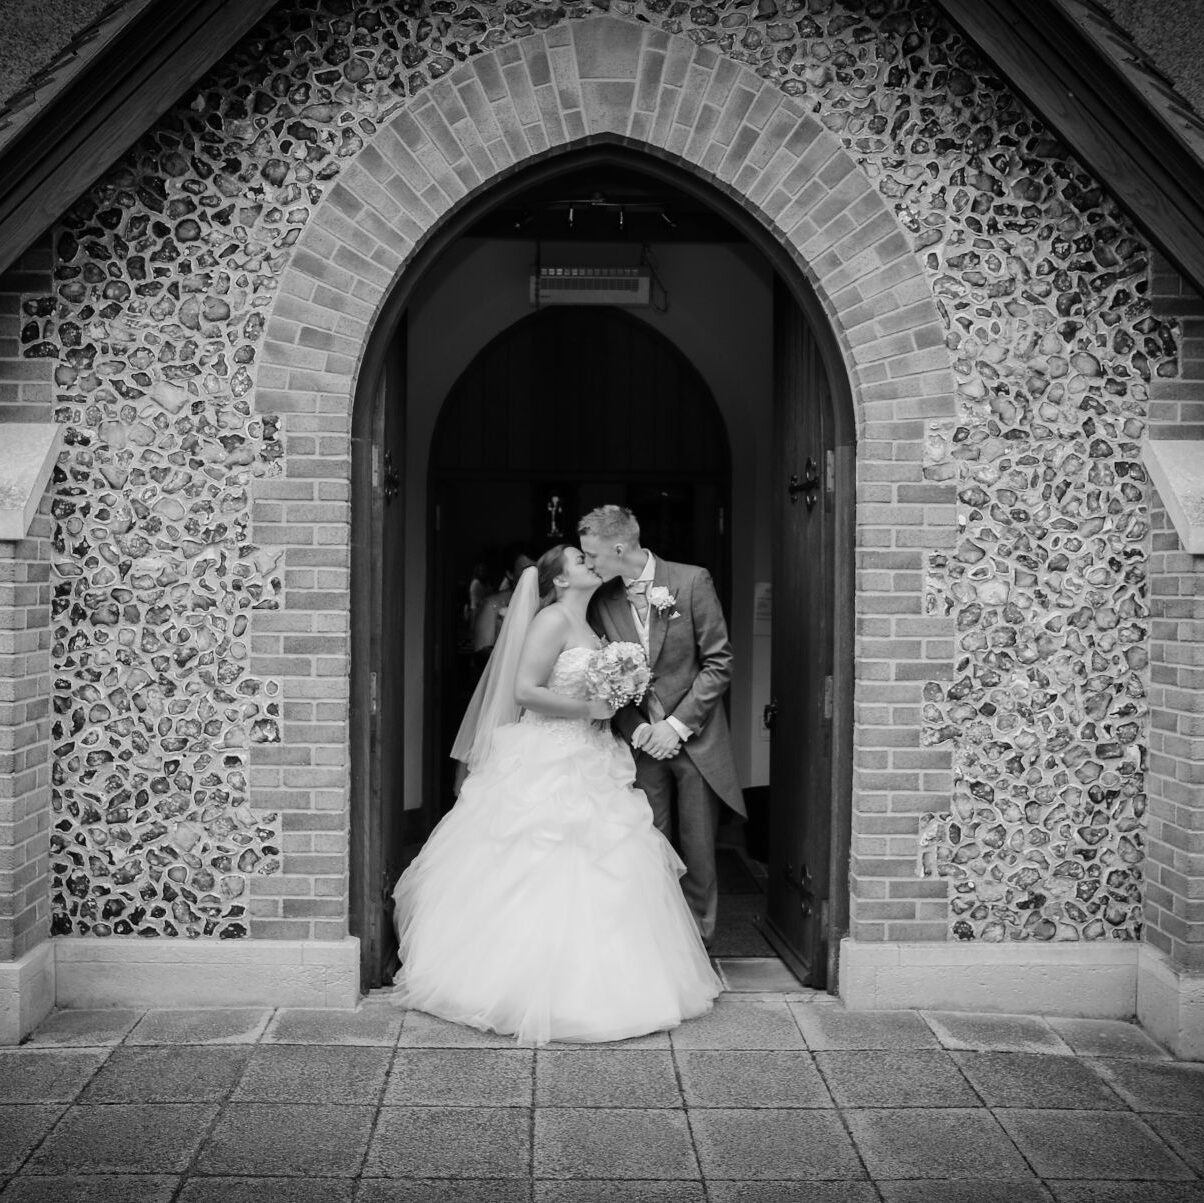 Wedding Photography in St. Paul's Church, Letchworth, Hertfordshire - Ryan Hughes Photography - 158